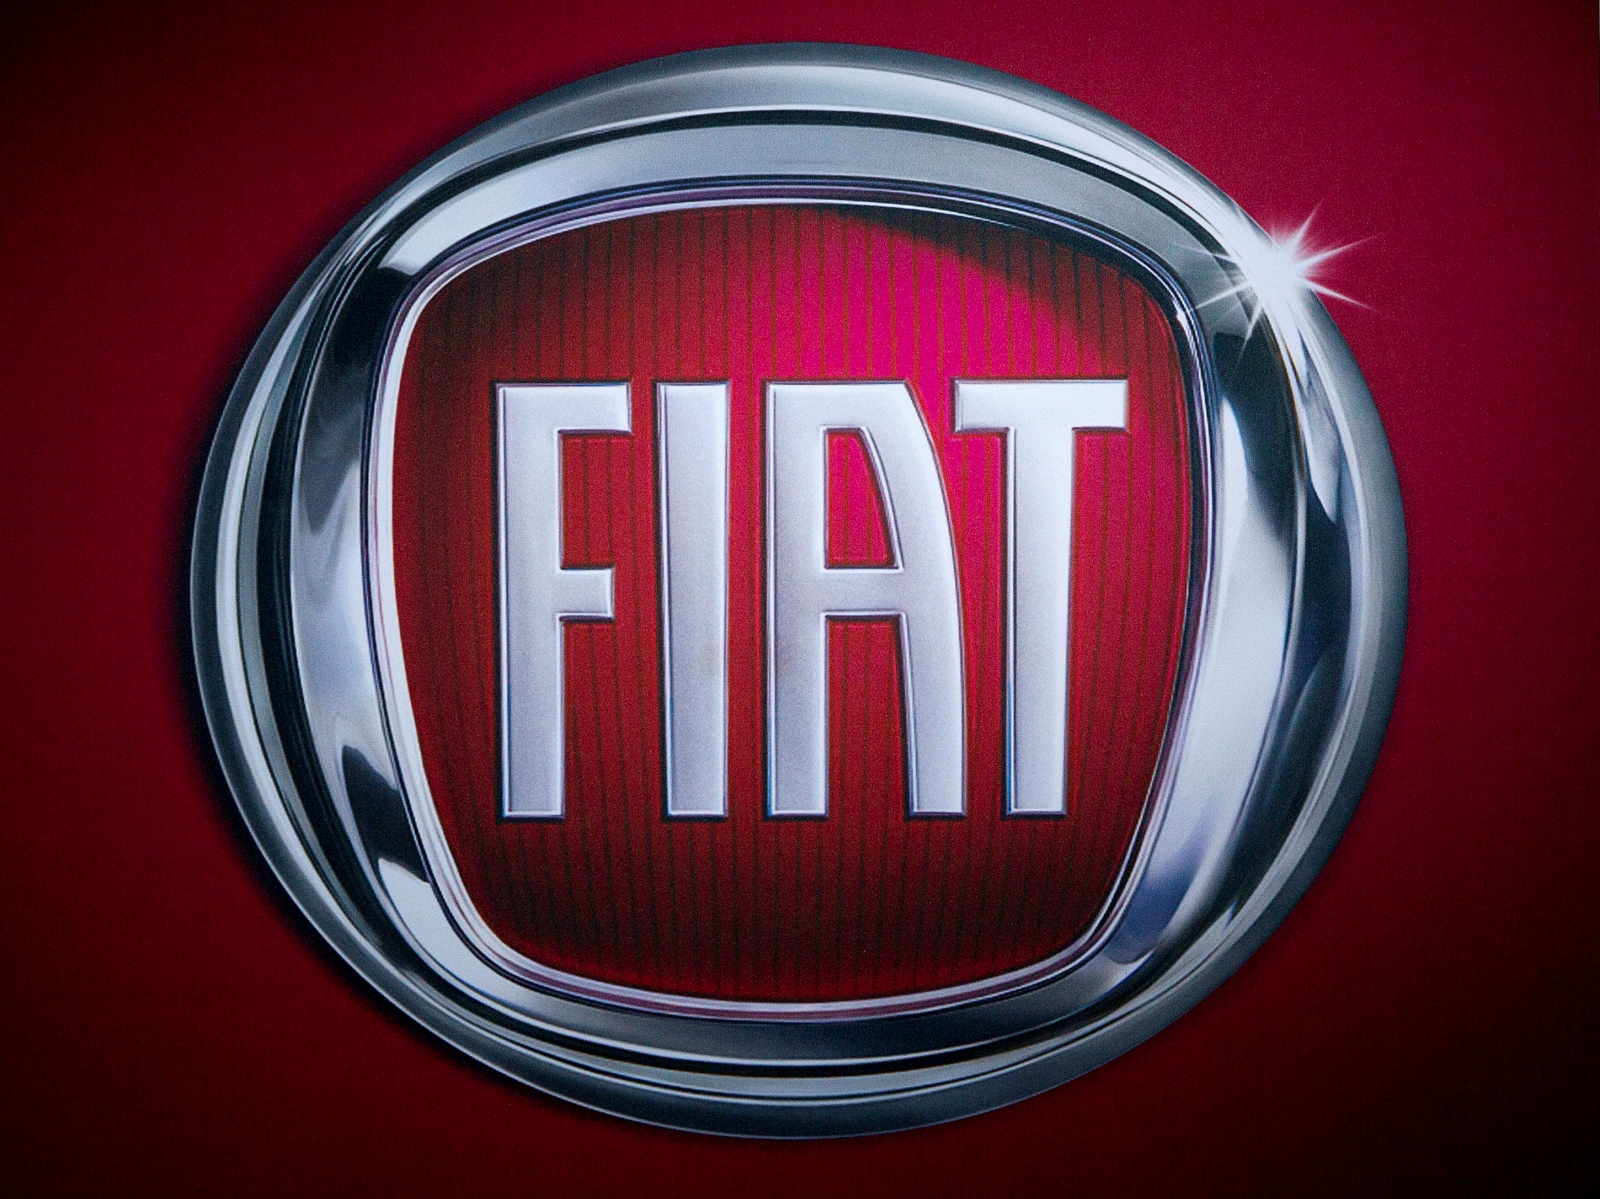 Uk to test fiat chrylser jeeps as emissions scandal grows fiat chrysler has denied any allegations it deliberately misled authorities over emissions reuters biocorpaavc Images